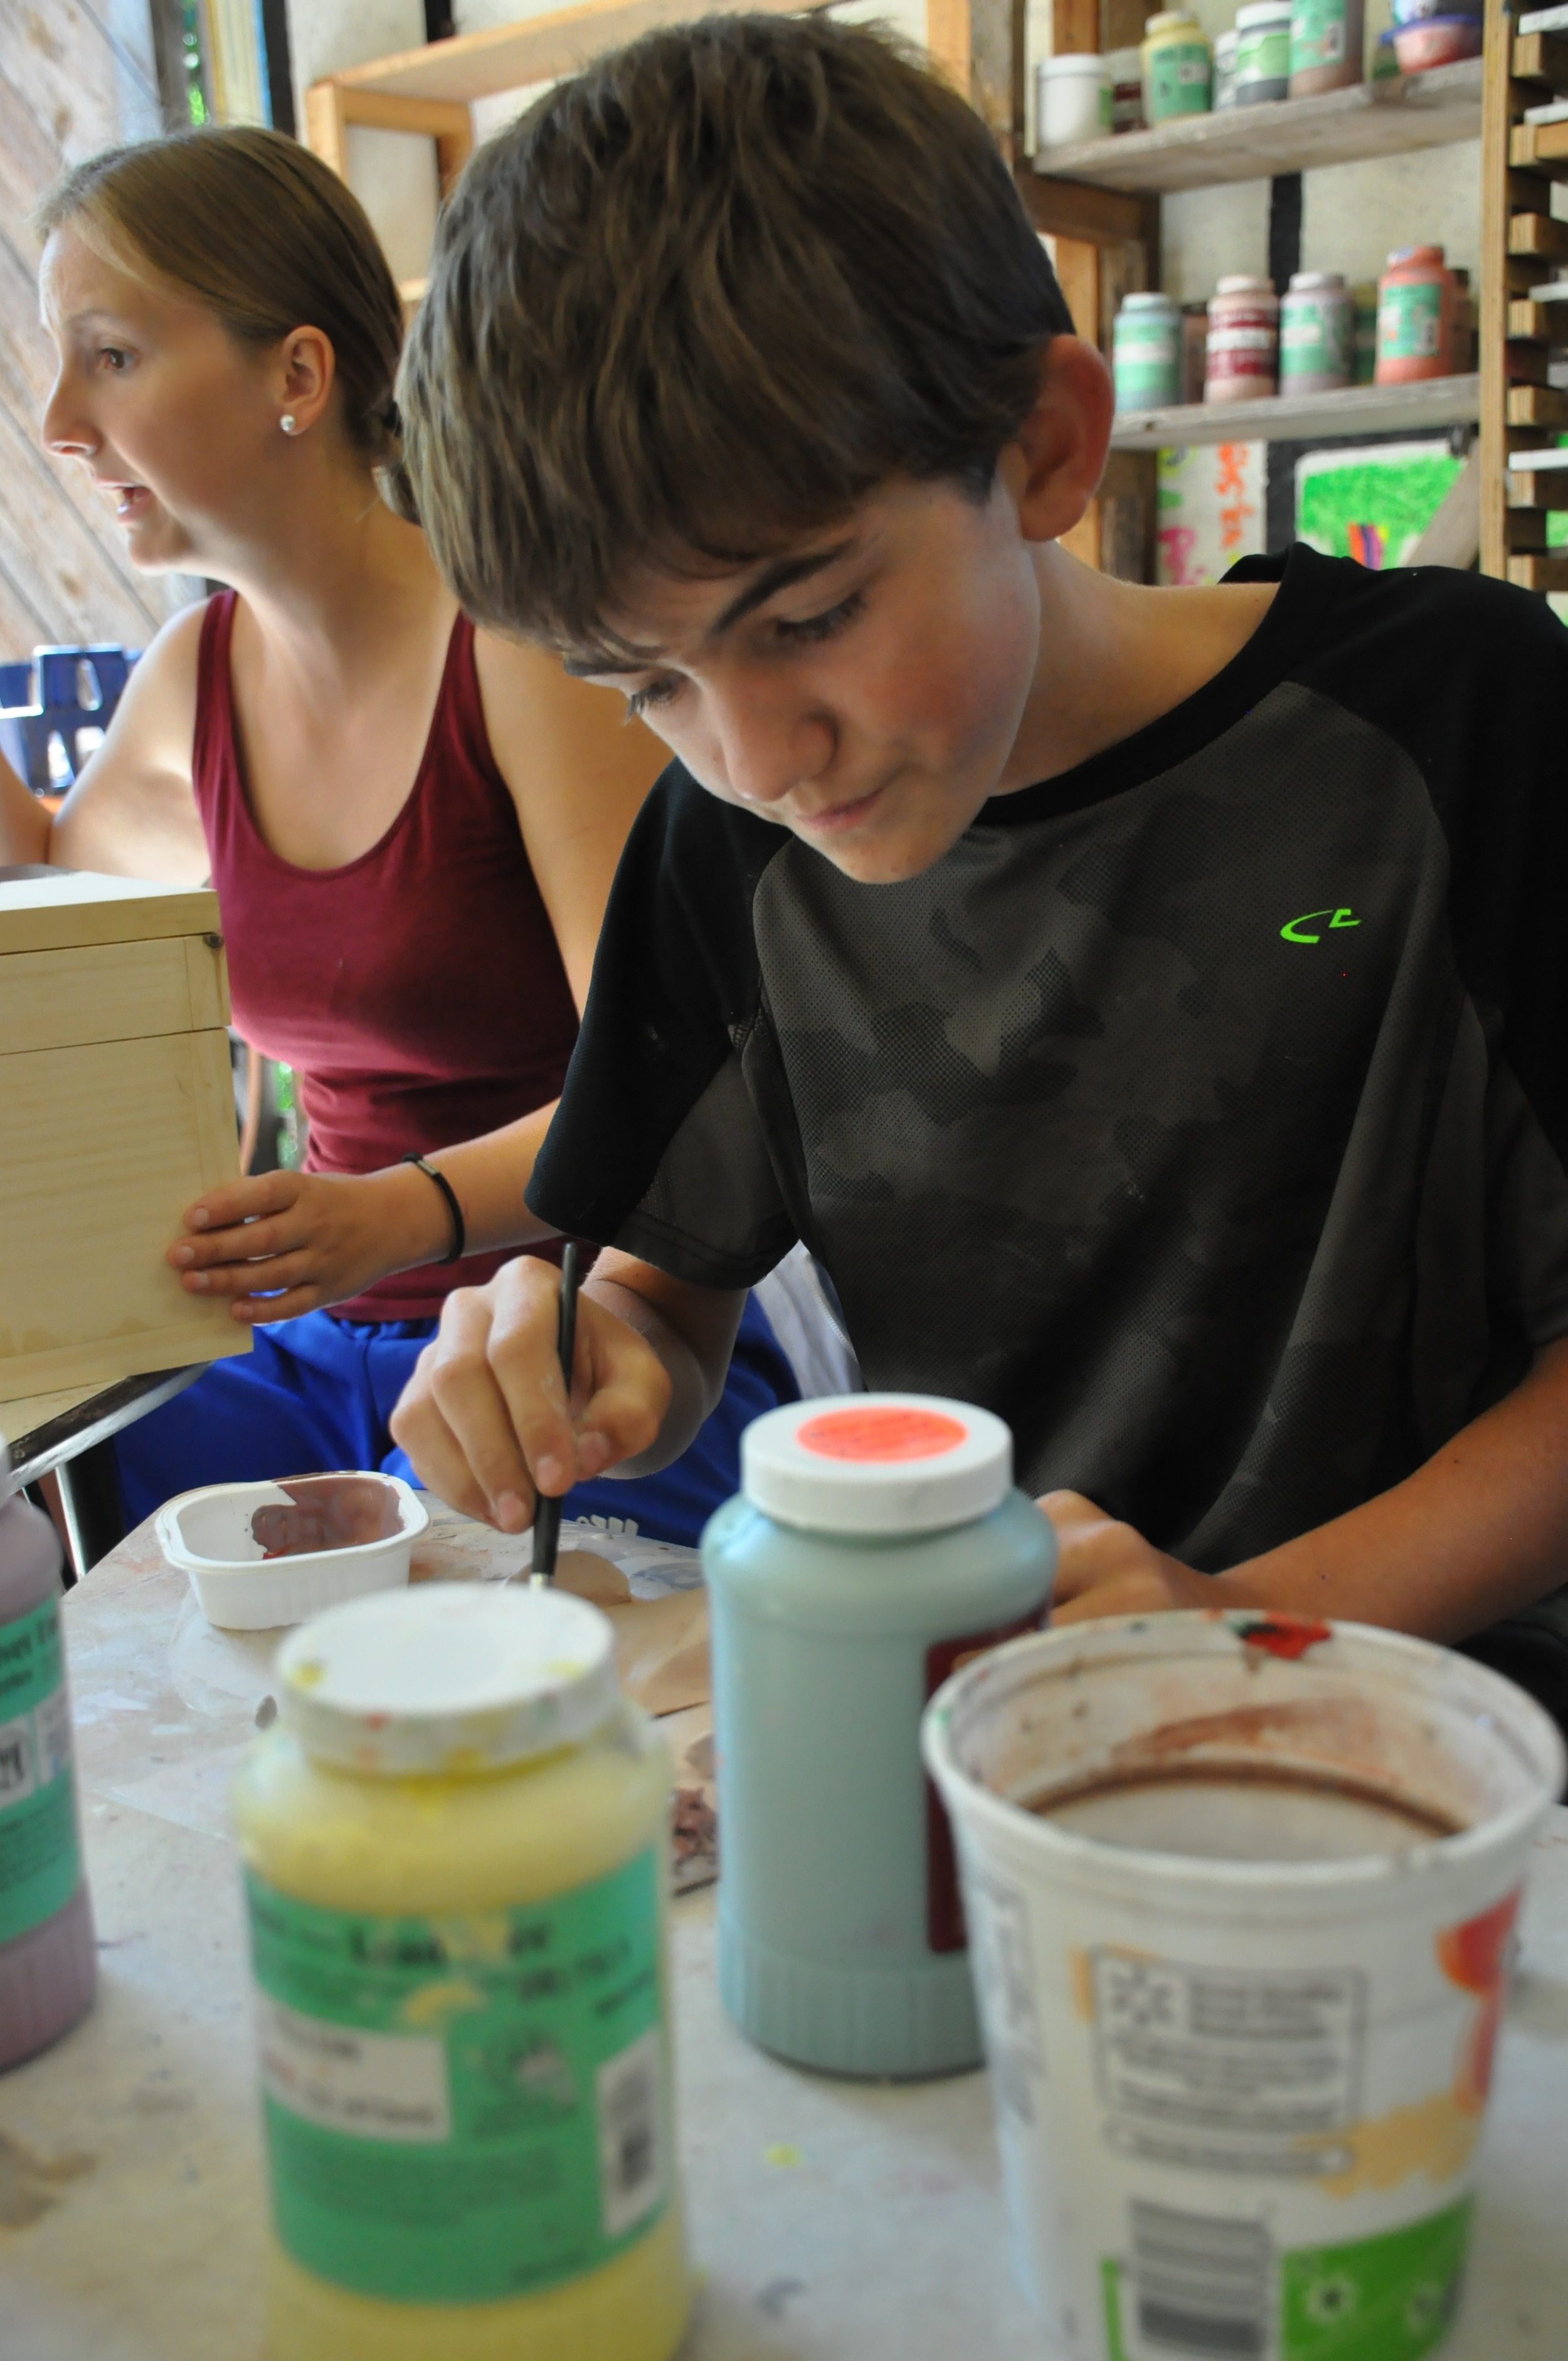 jace-is-glazing-his-clay-during-art.jpg